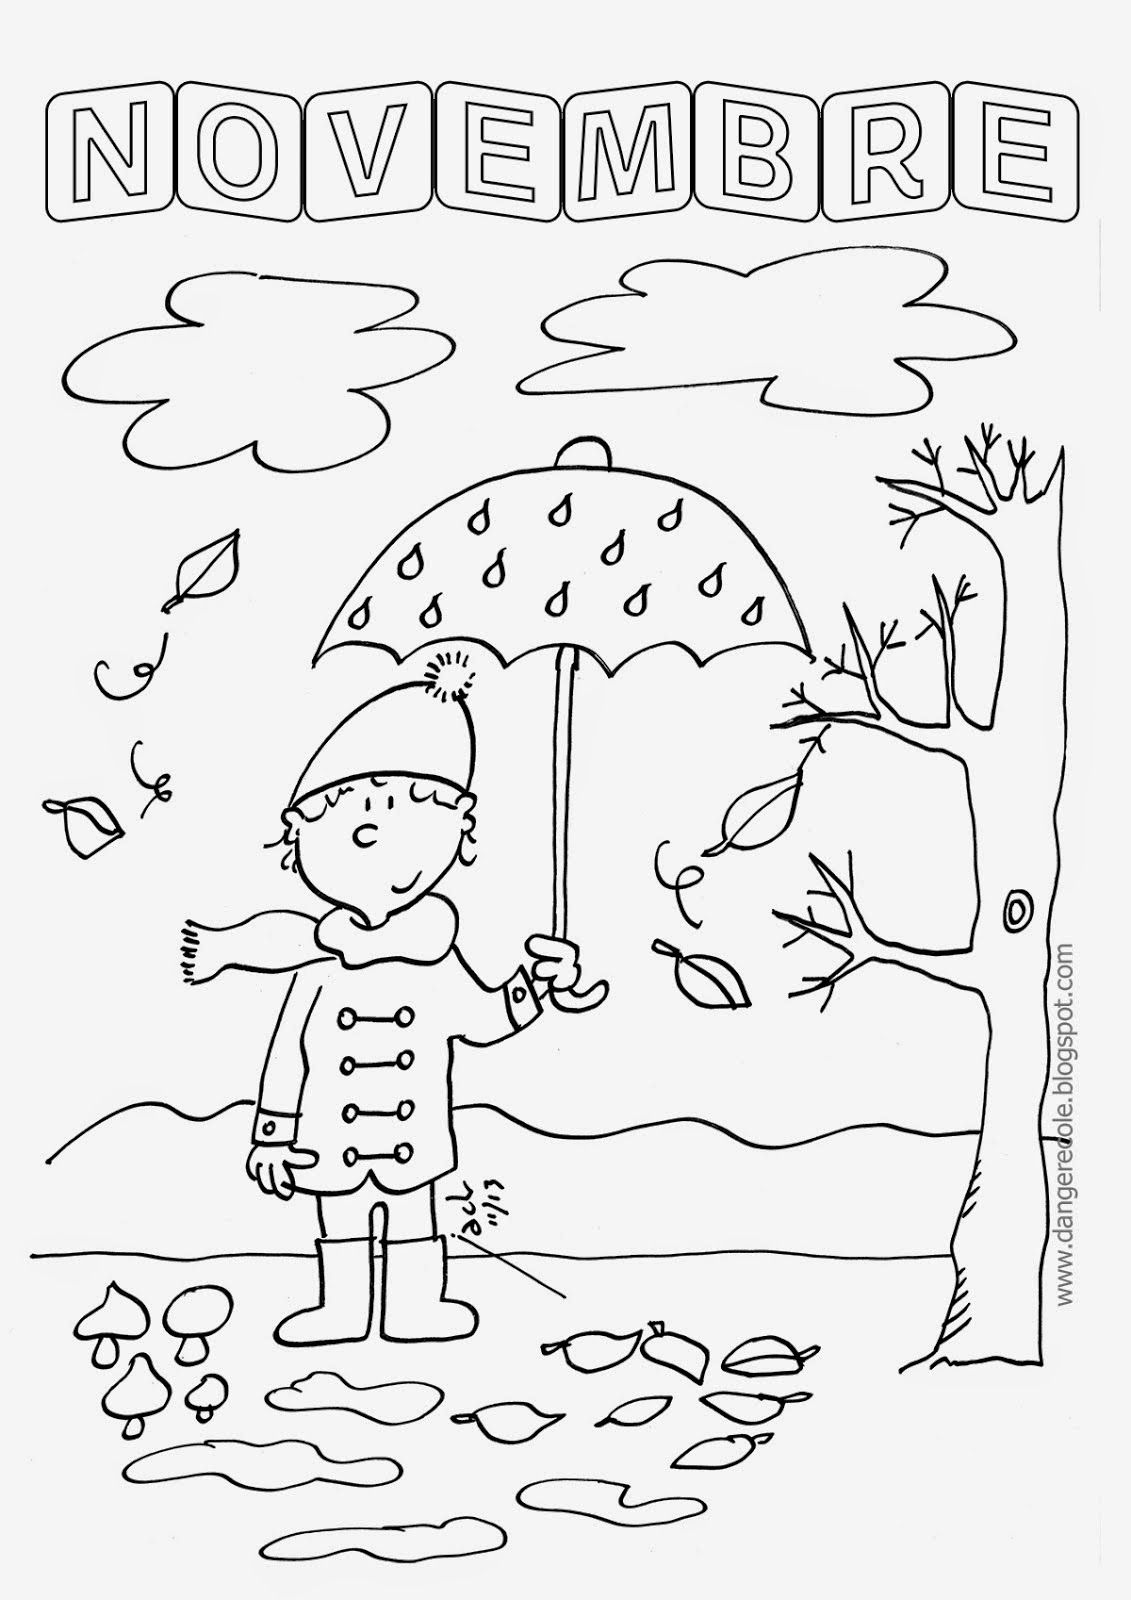 Coloriage Garderie Ecole.Danger Ecole Coloriages Fall Arts Crafts Colouring